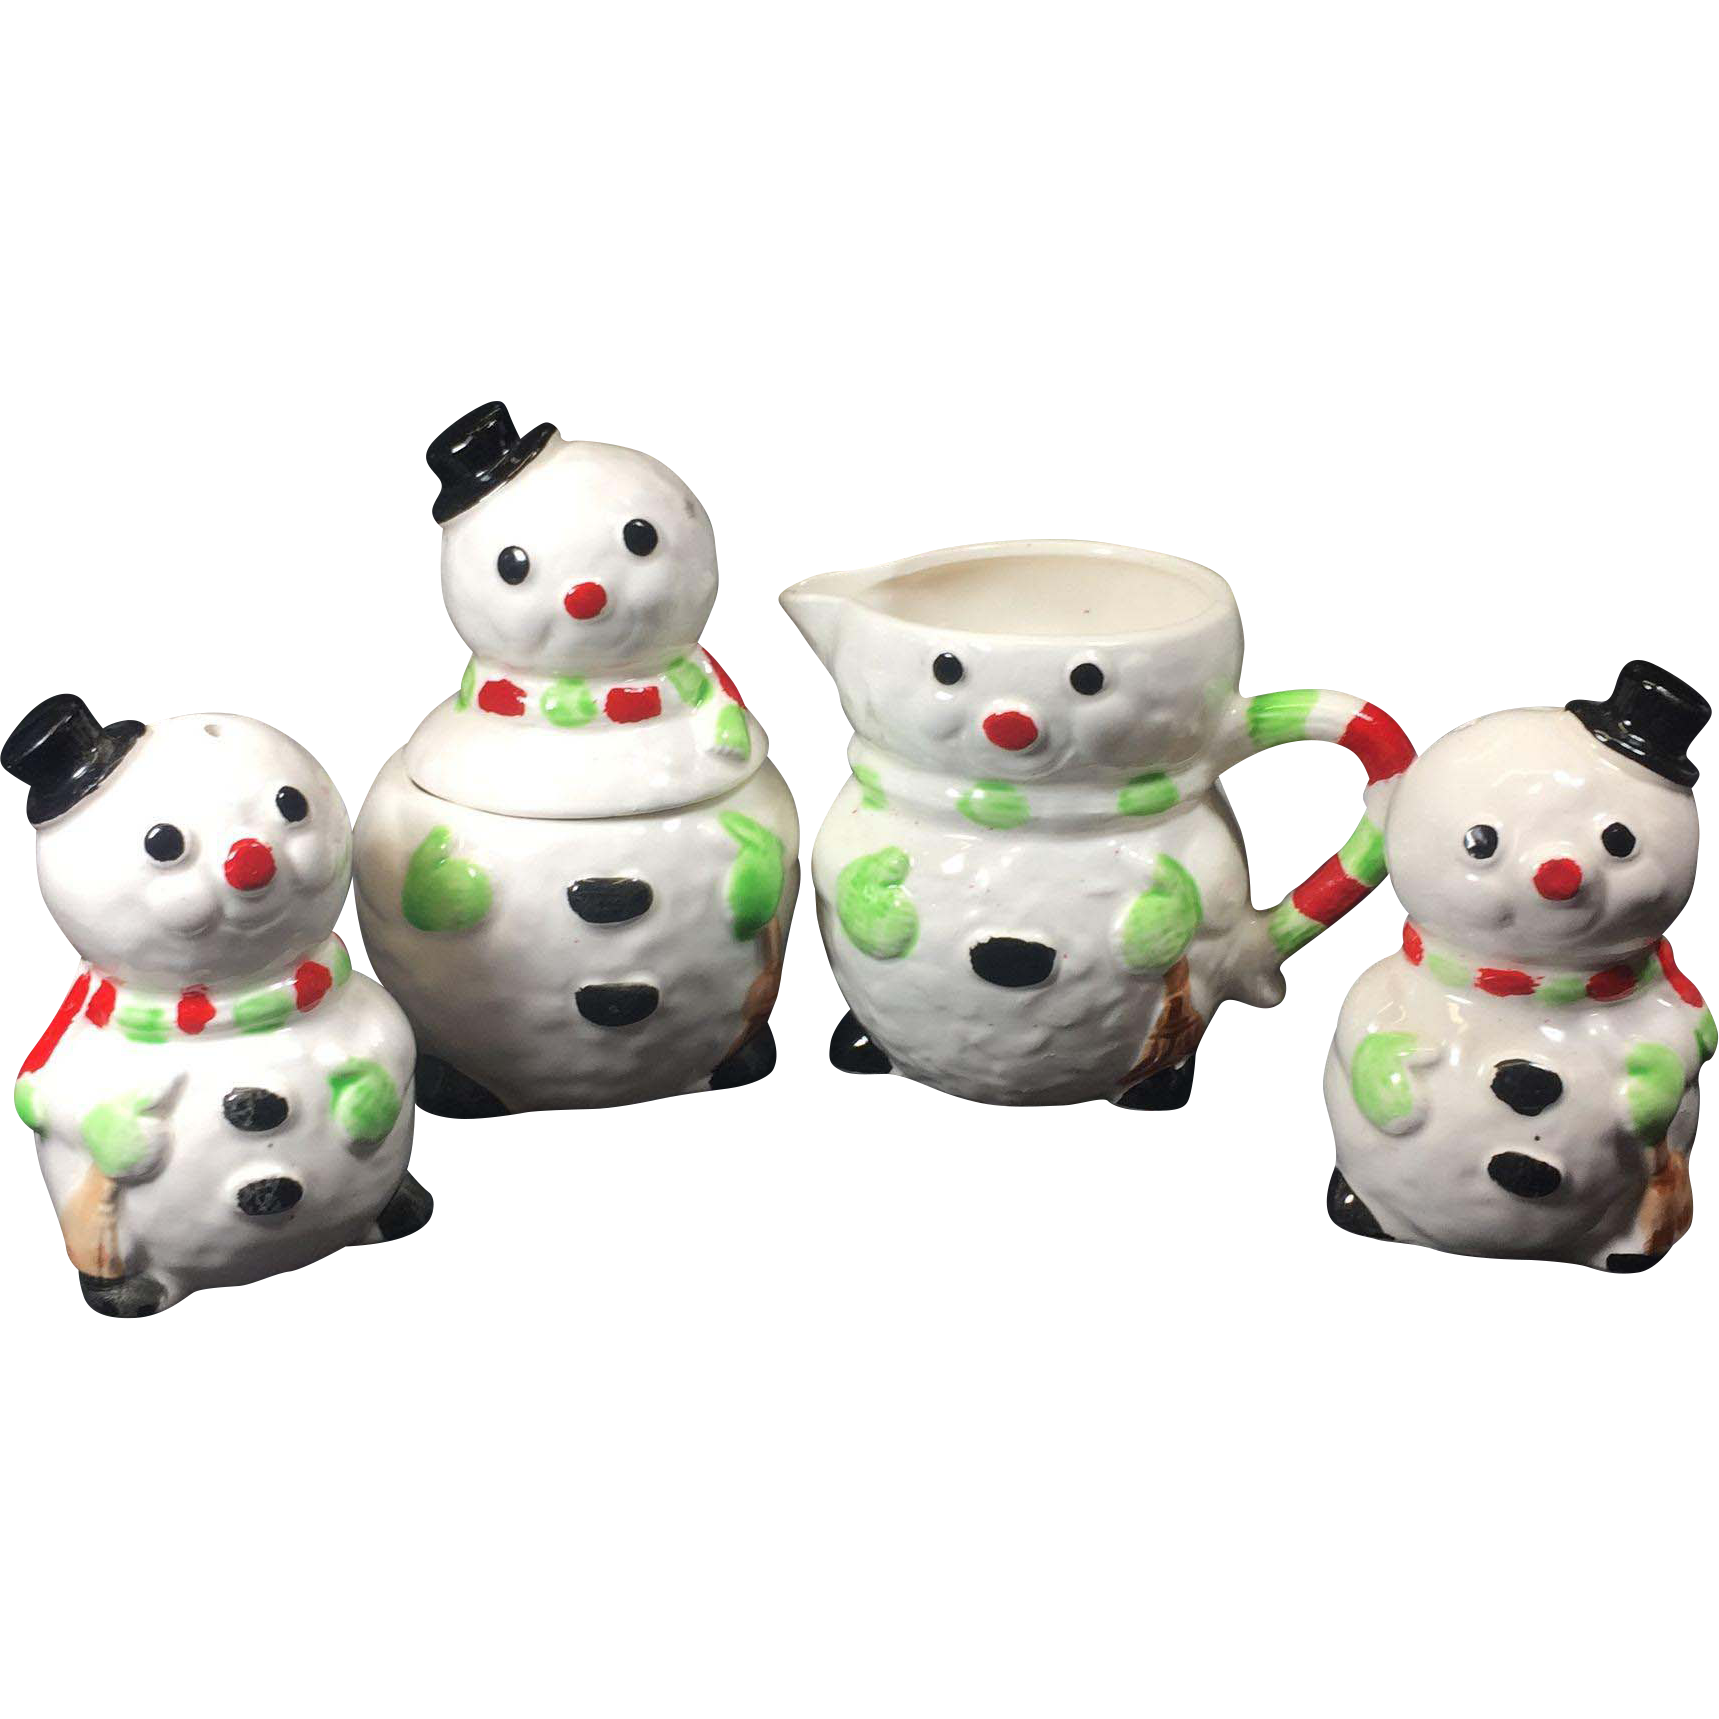 Vintage Snowman Sugar Creamer Salt Pepper Shakers Enesco Ceramic